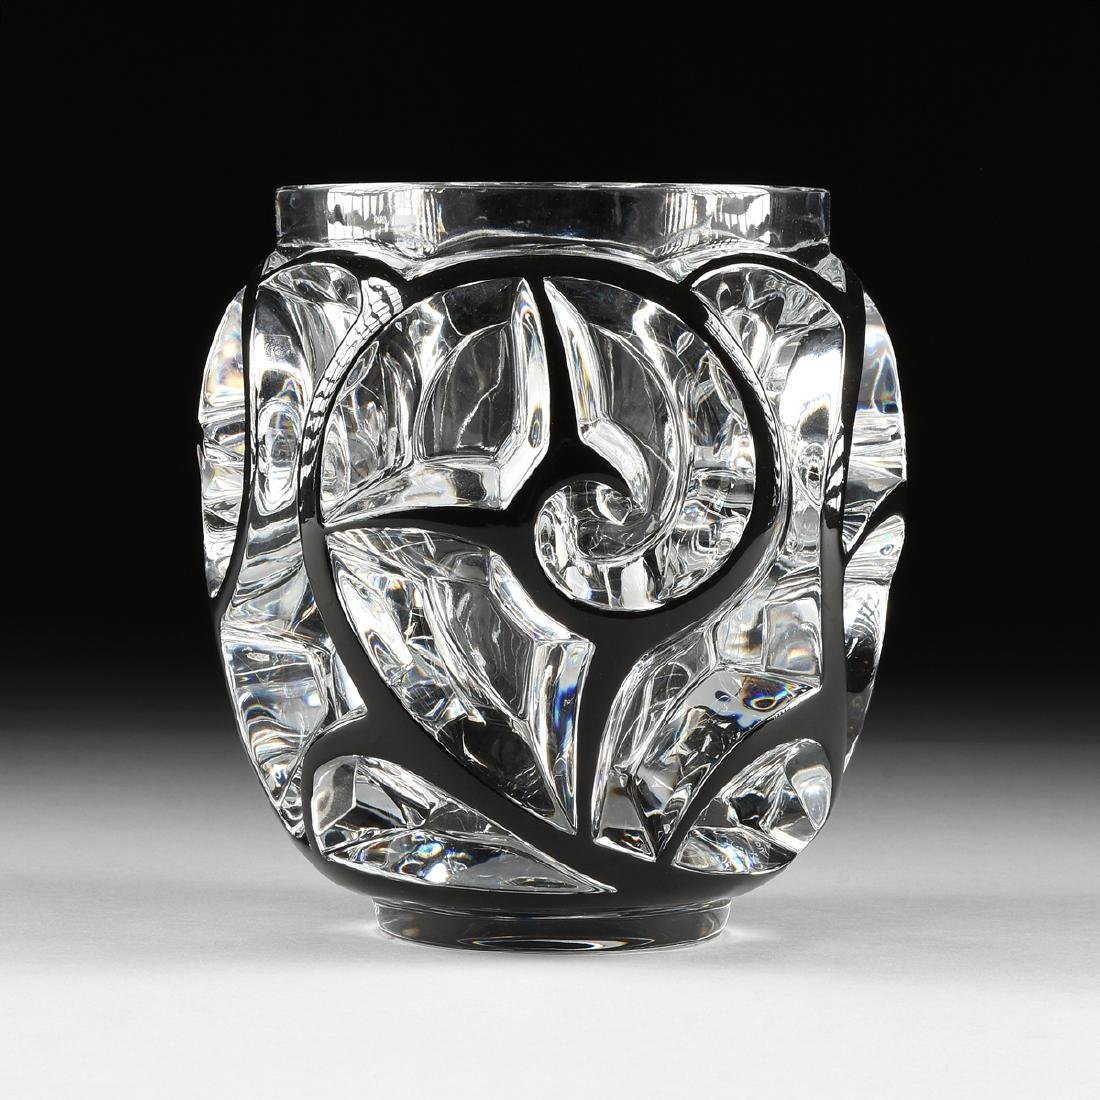 RENE LALIQUE (French 1860-1945) A LIMITED EDITION CASED